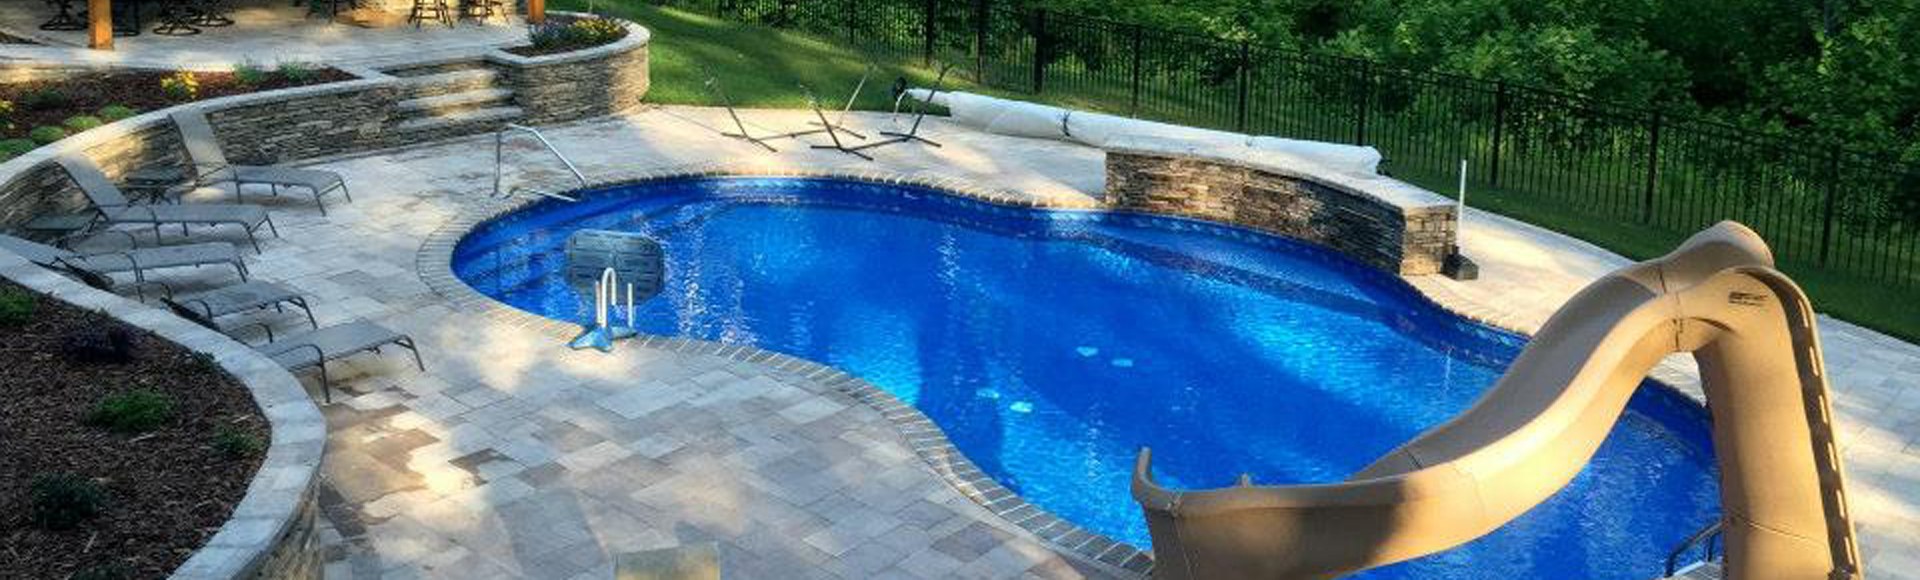 Triad\'s Best Vinyl and Fiberglass Pool Builder For 62 Yrs ...